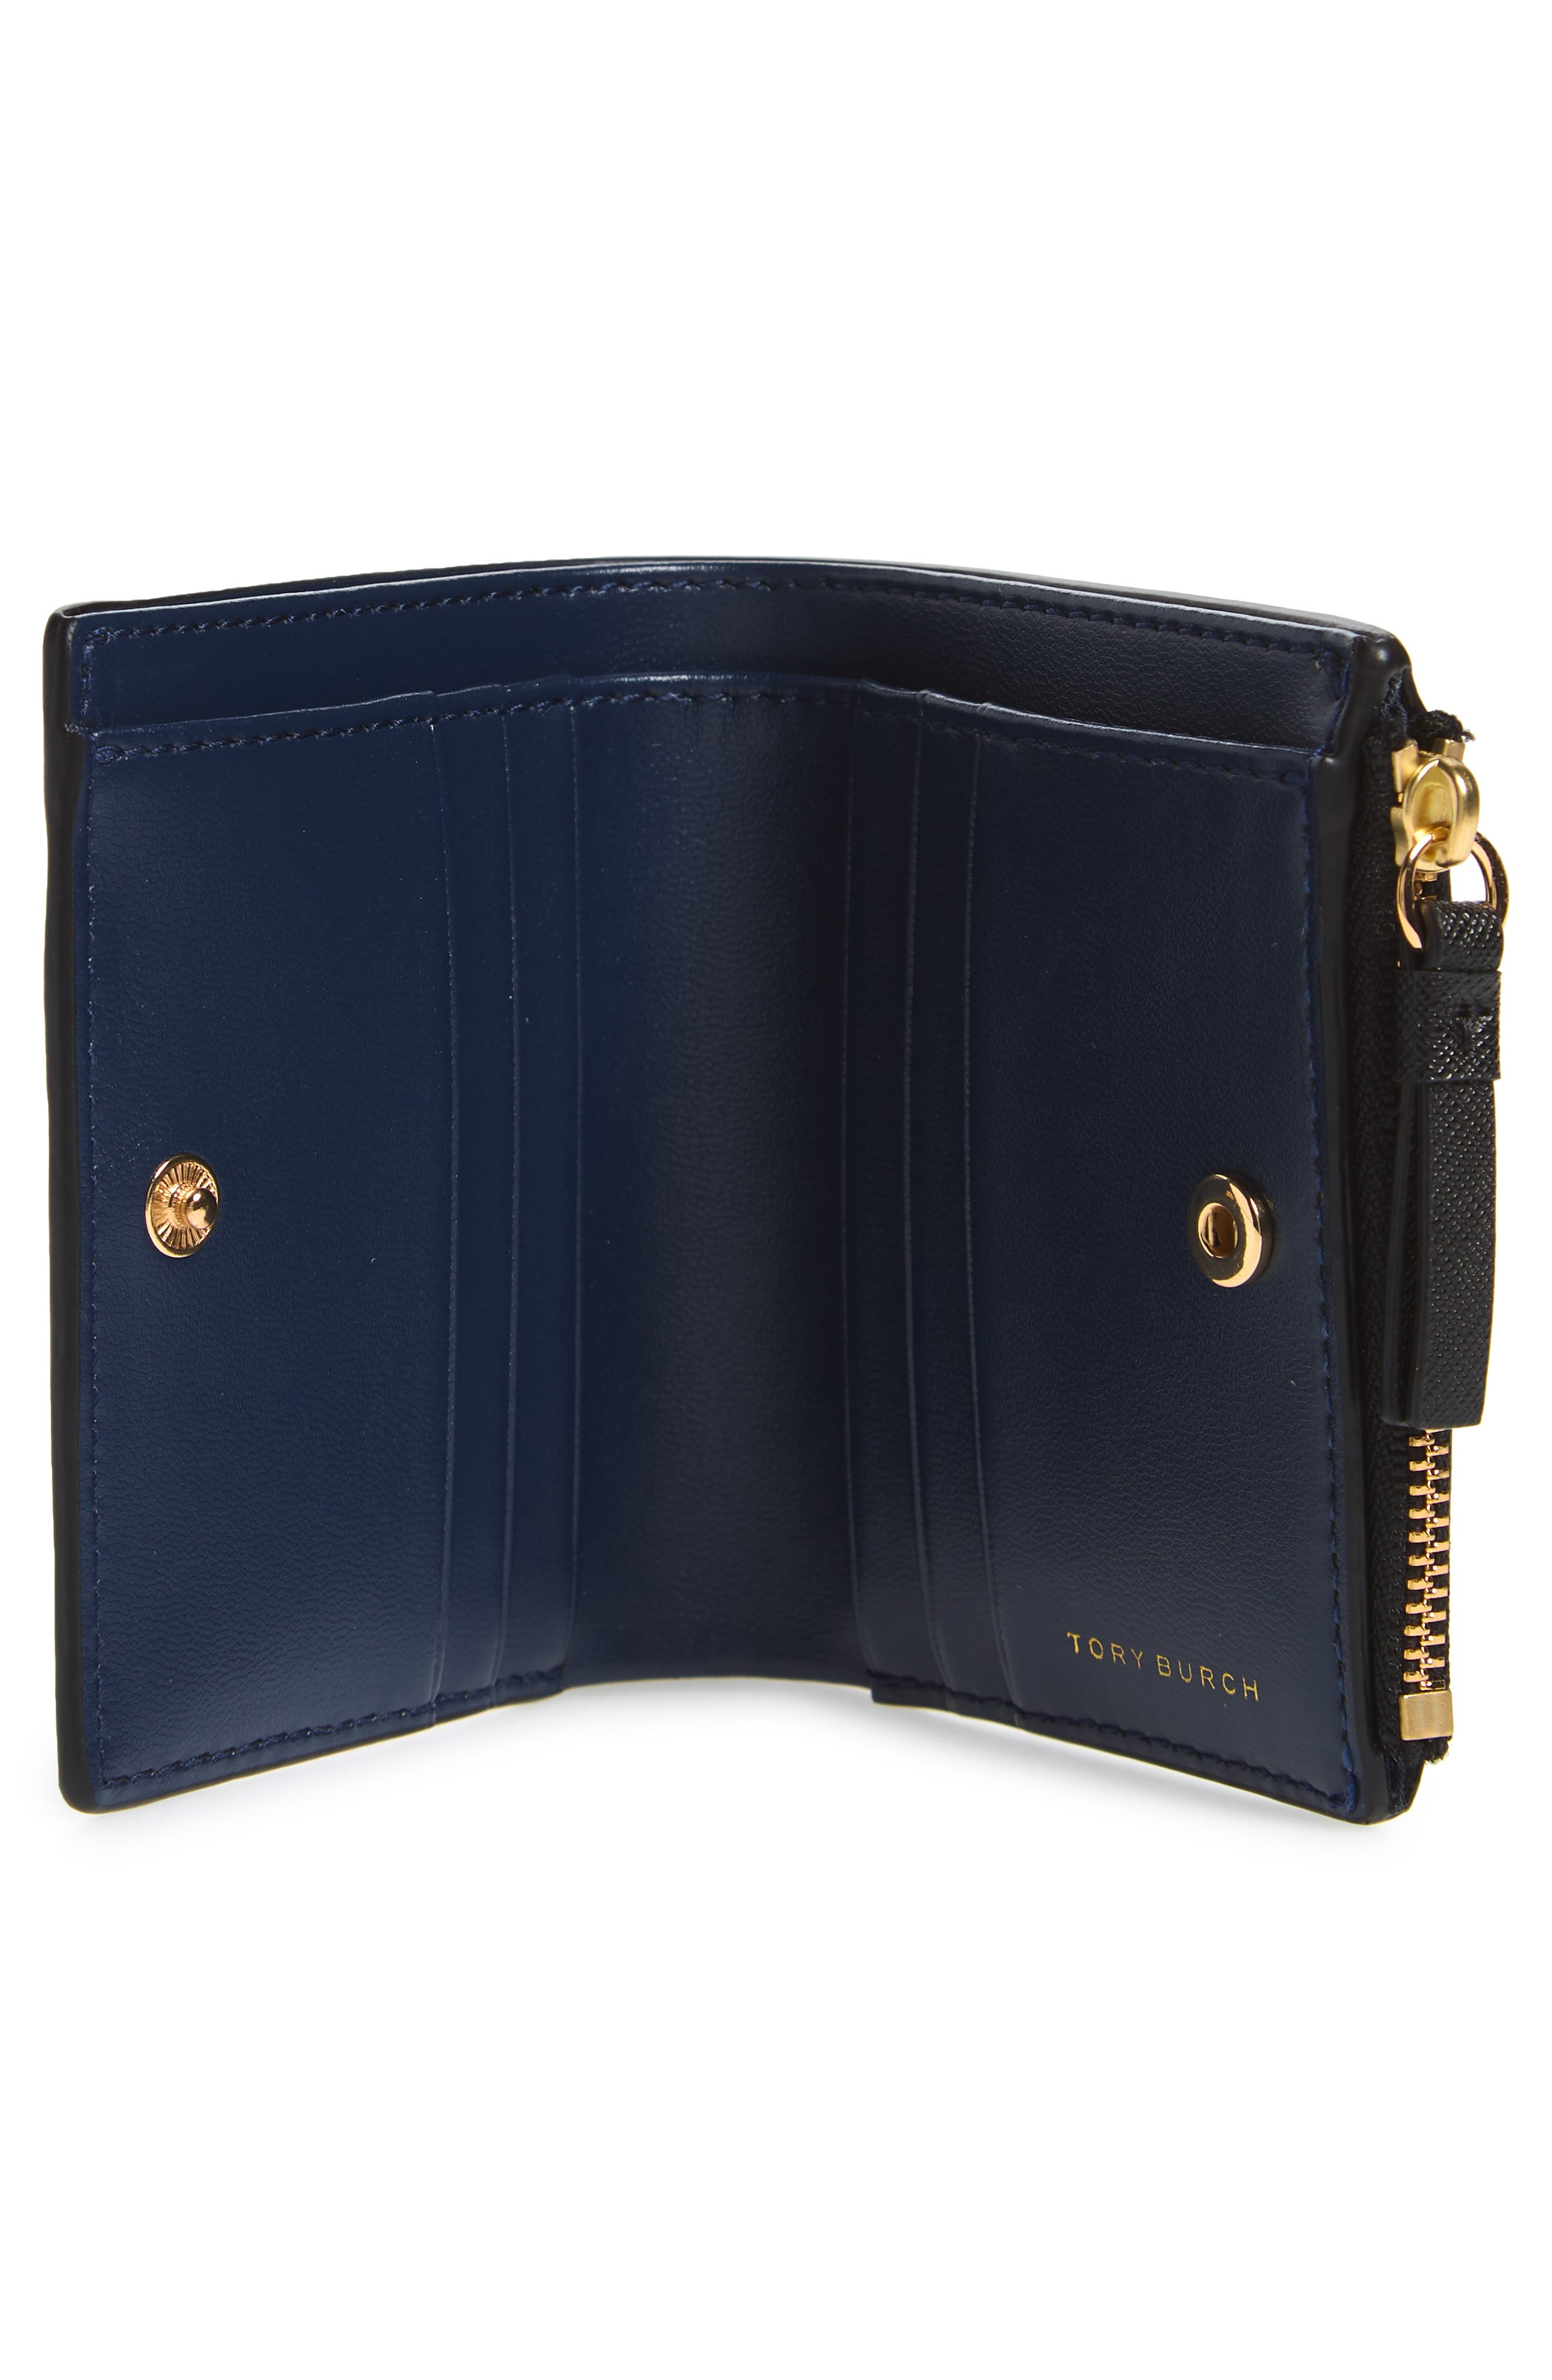 f1daf7164e9 Tory Burch Wallets   Card Cases for Women